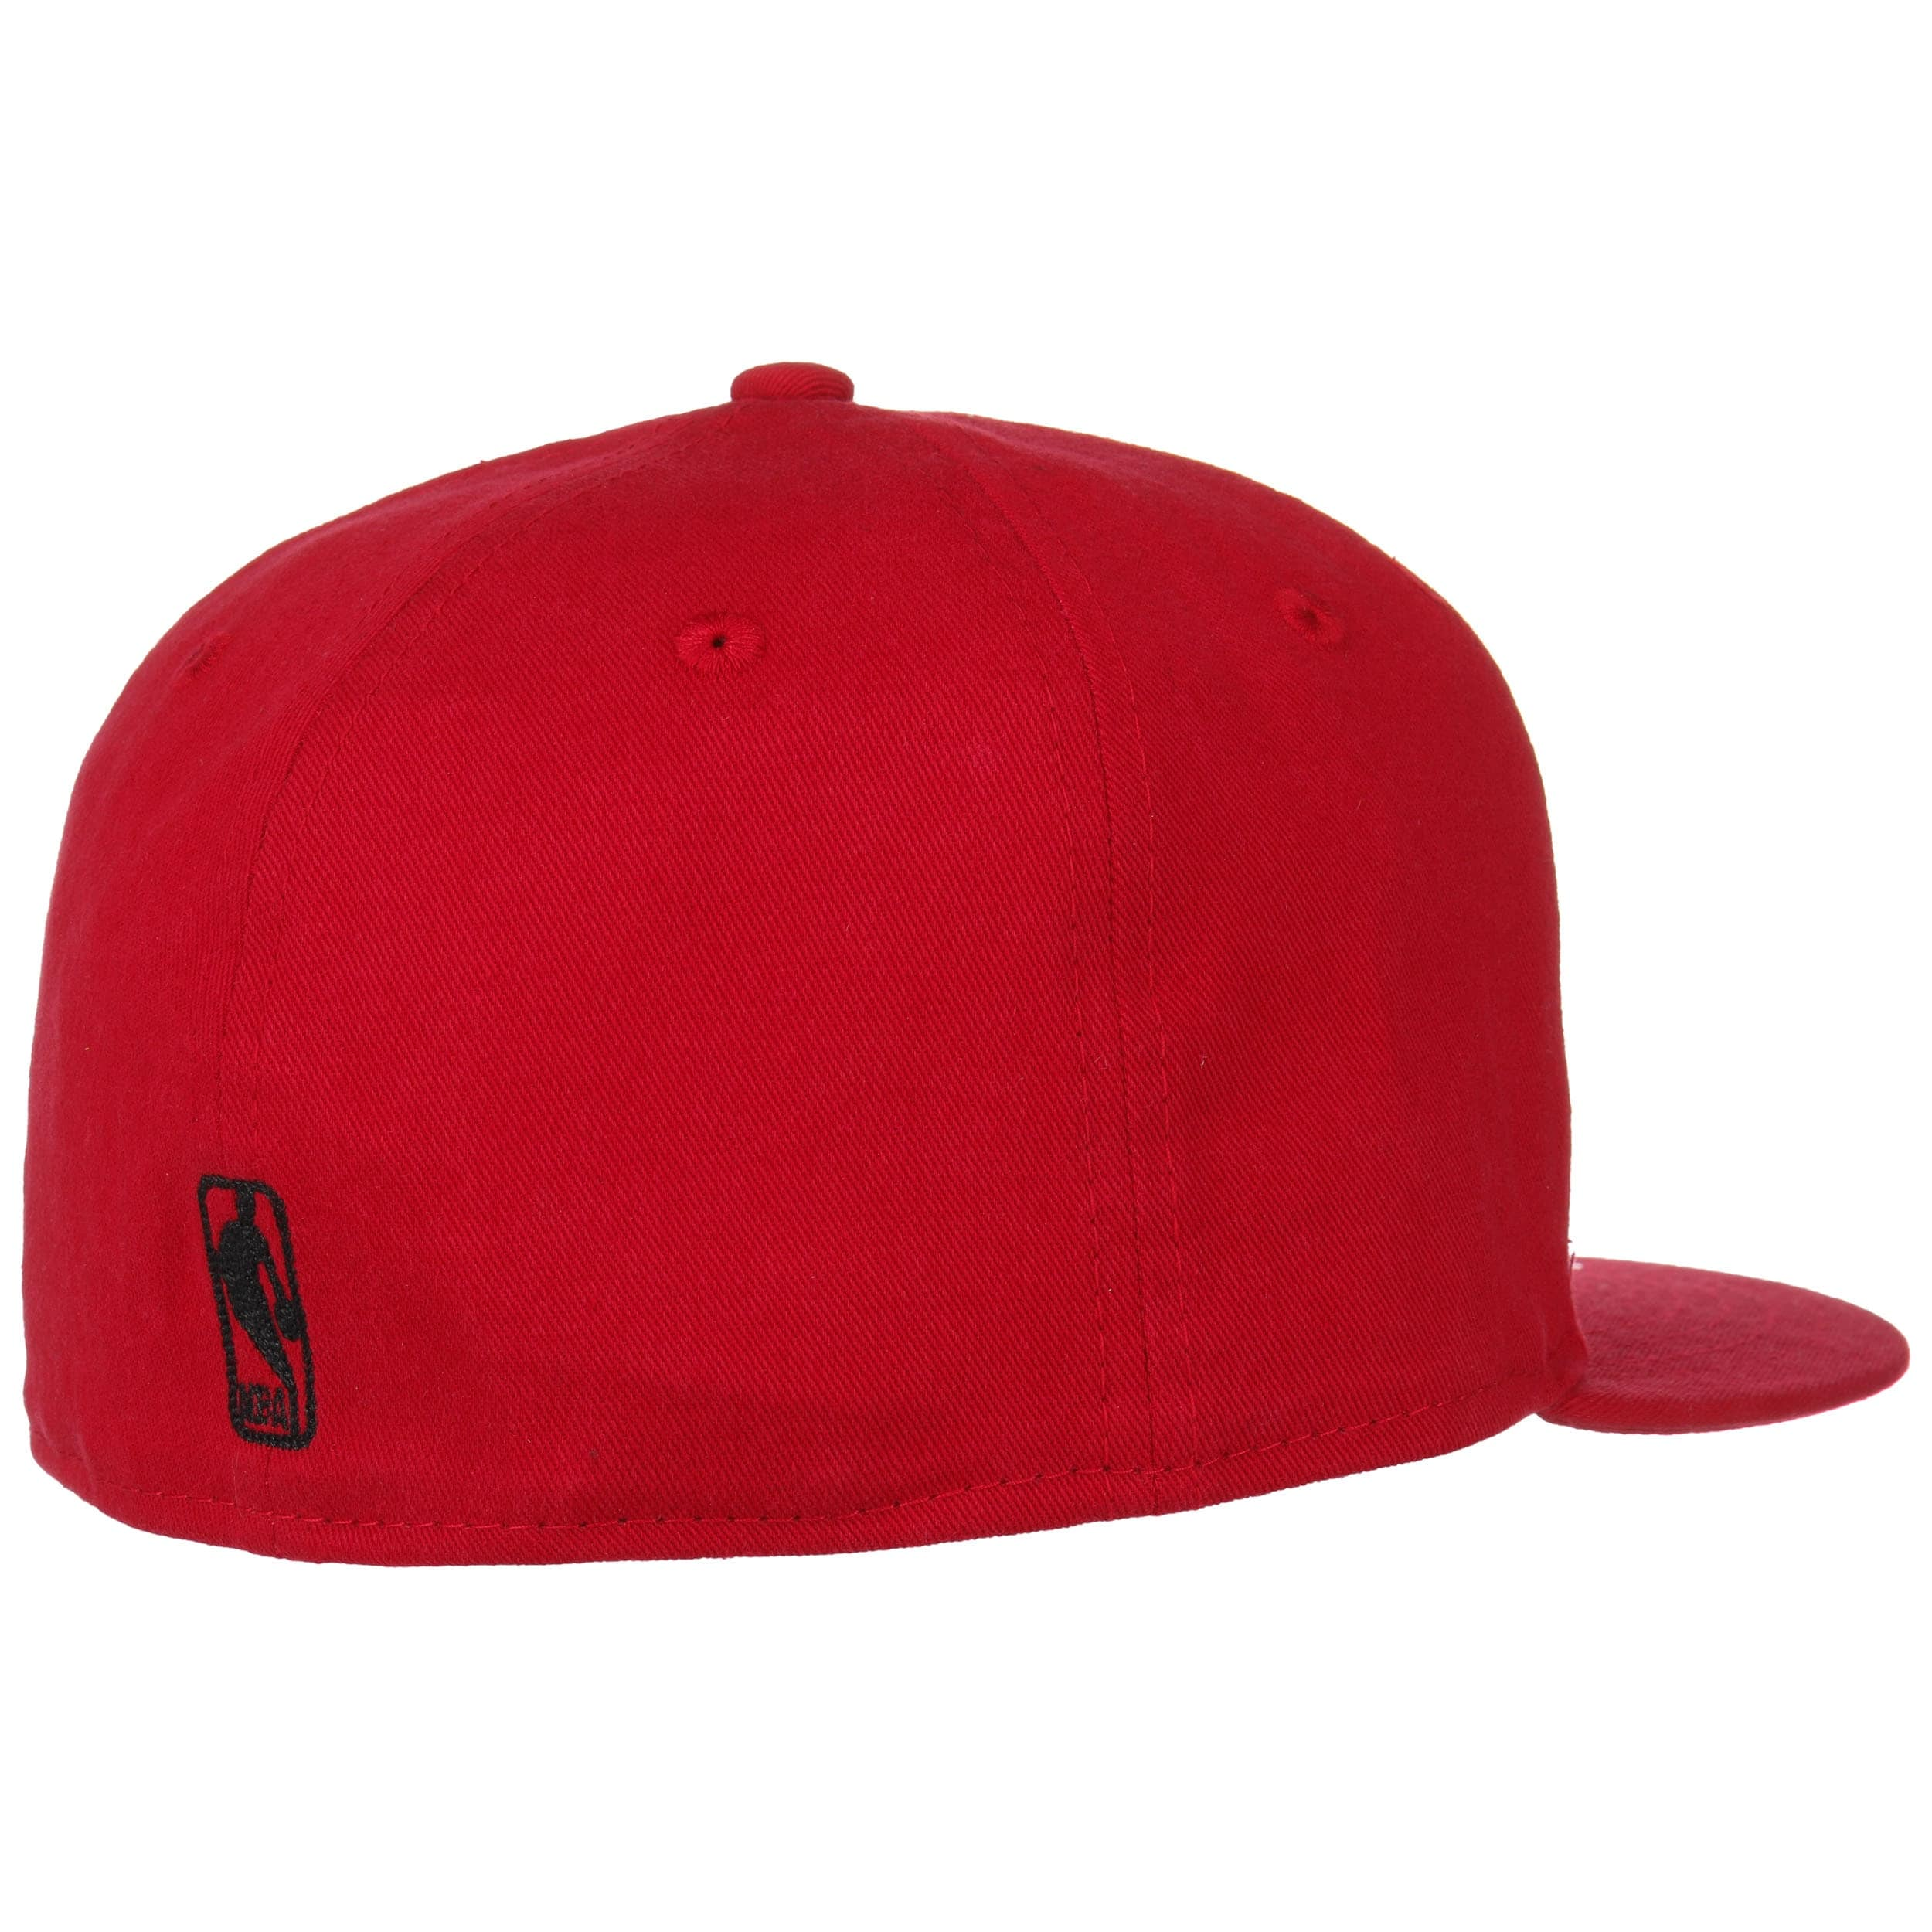 ... 59Fifty Chainstitch Bulls Cap by New Era - red 3 ... 52430310fba2